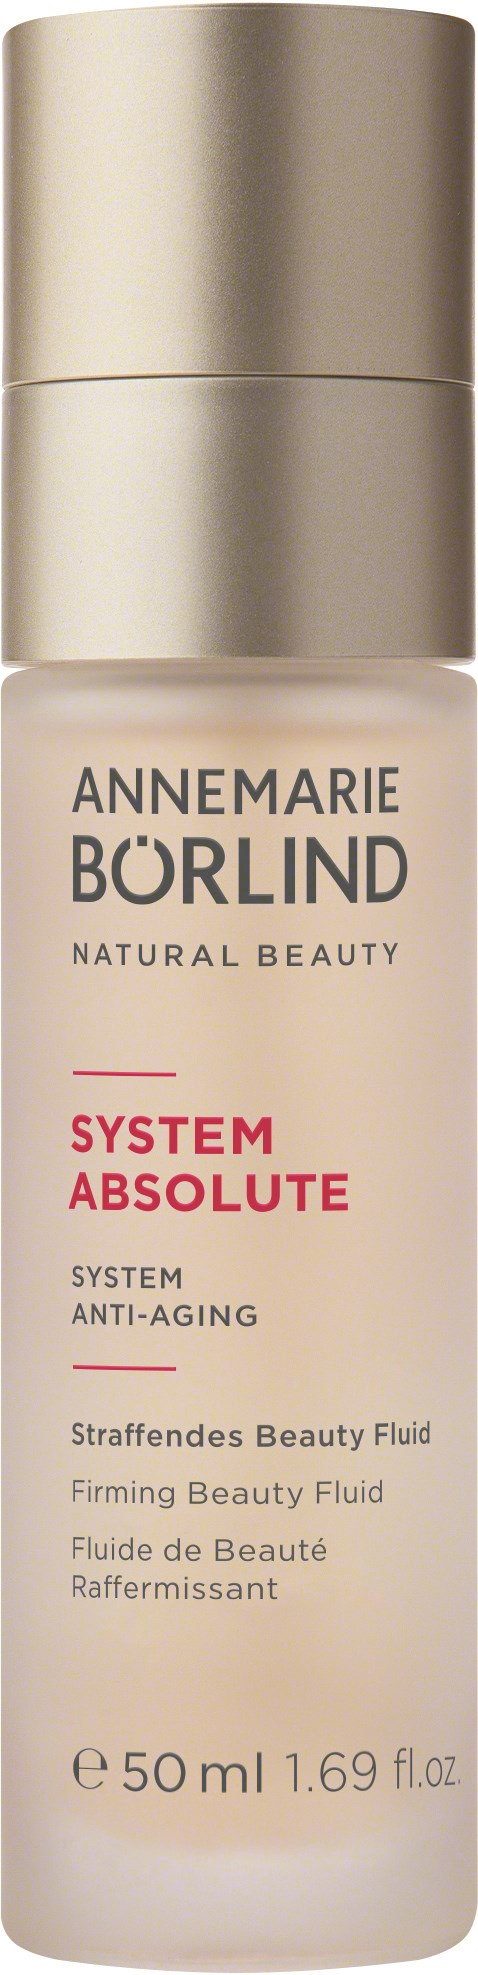 System Absolute Anti-Aging Beauty Fluid